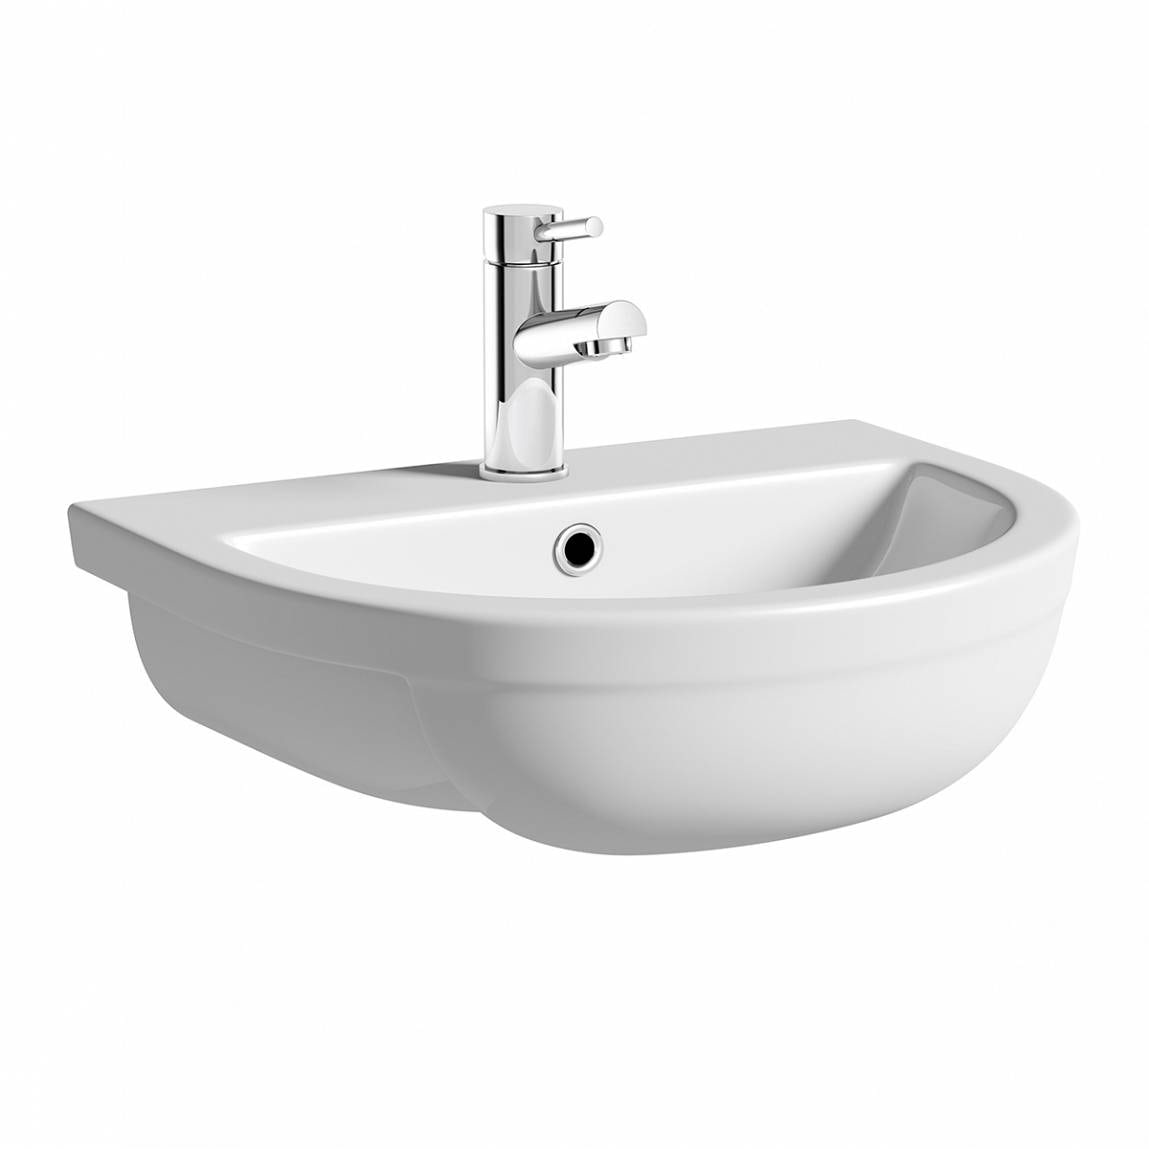 Orchard Elena 1 tap hole semi recessed counter top basin 500mm with waste